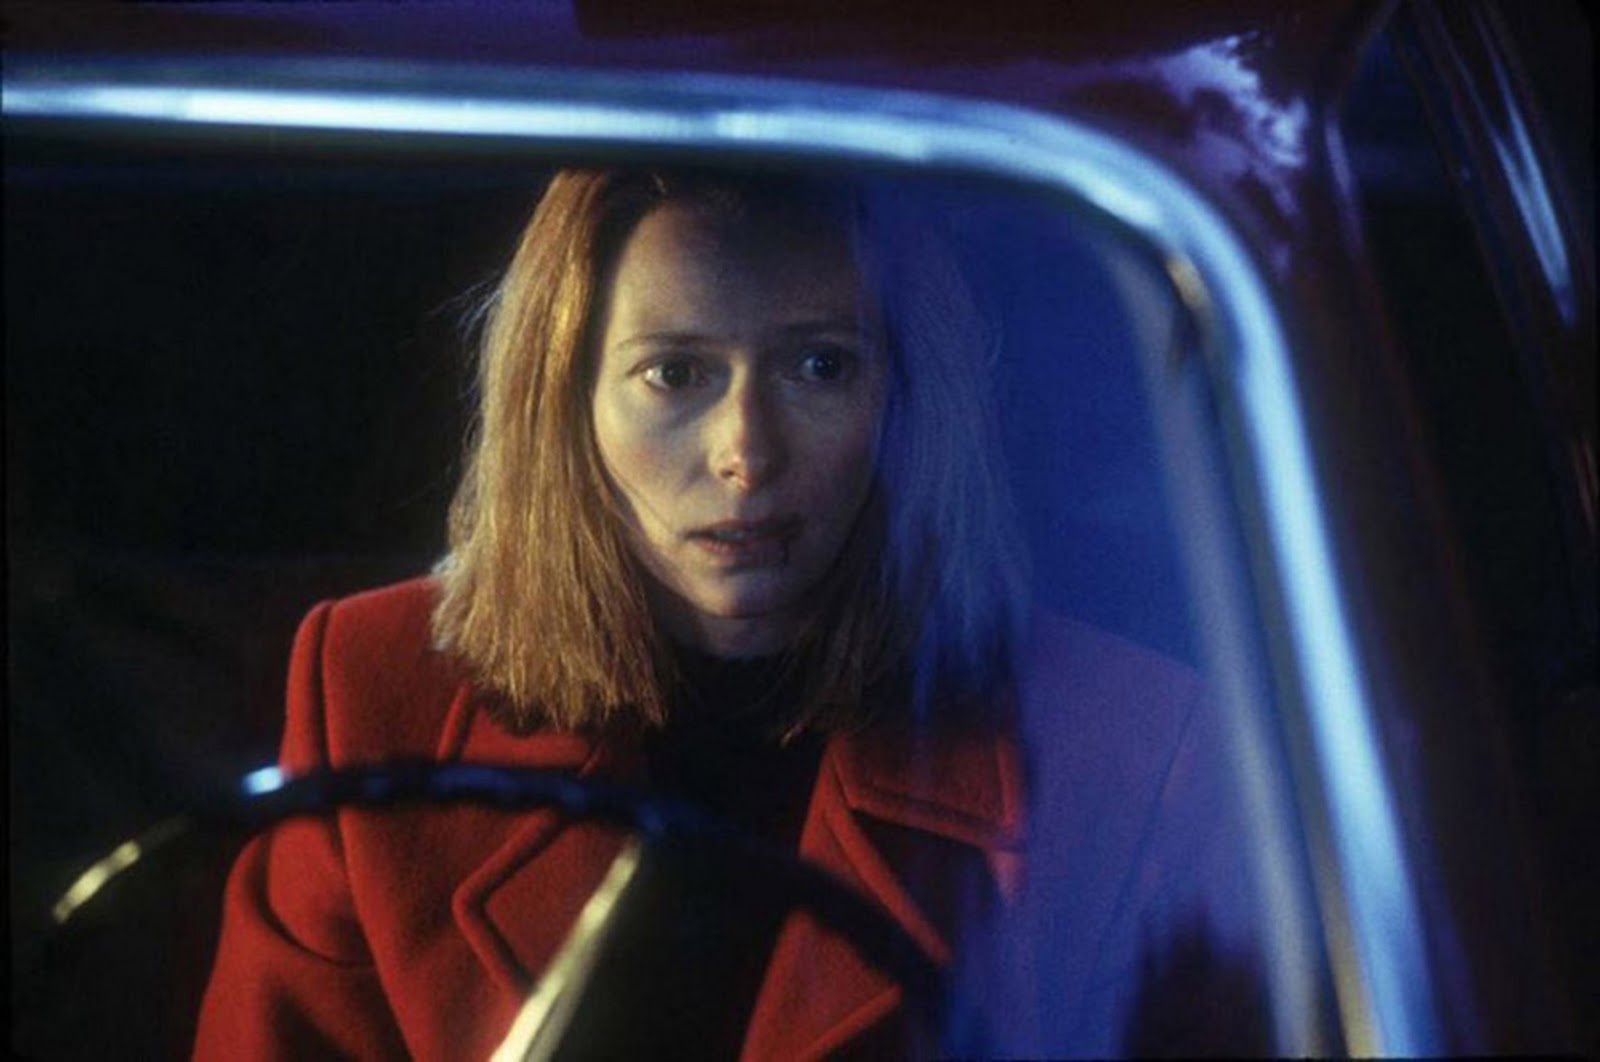 Film still from The Deep End (2001).